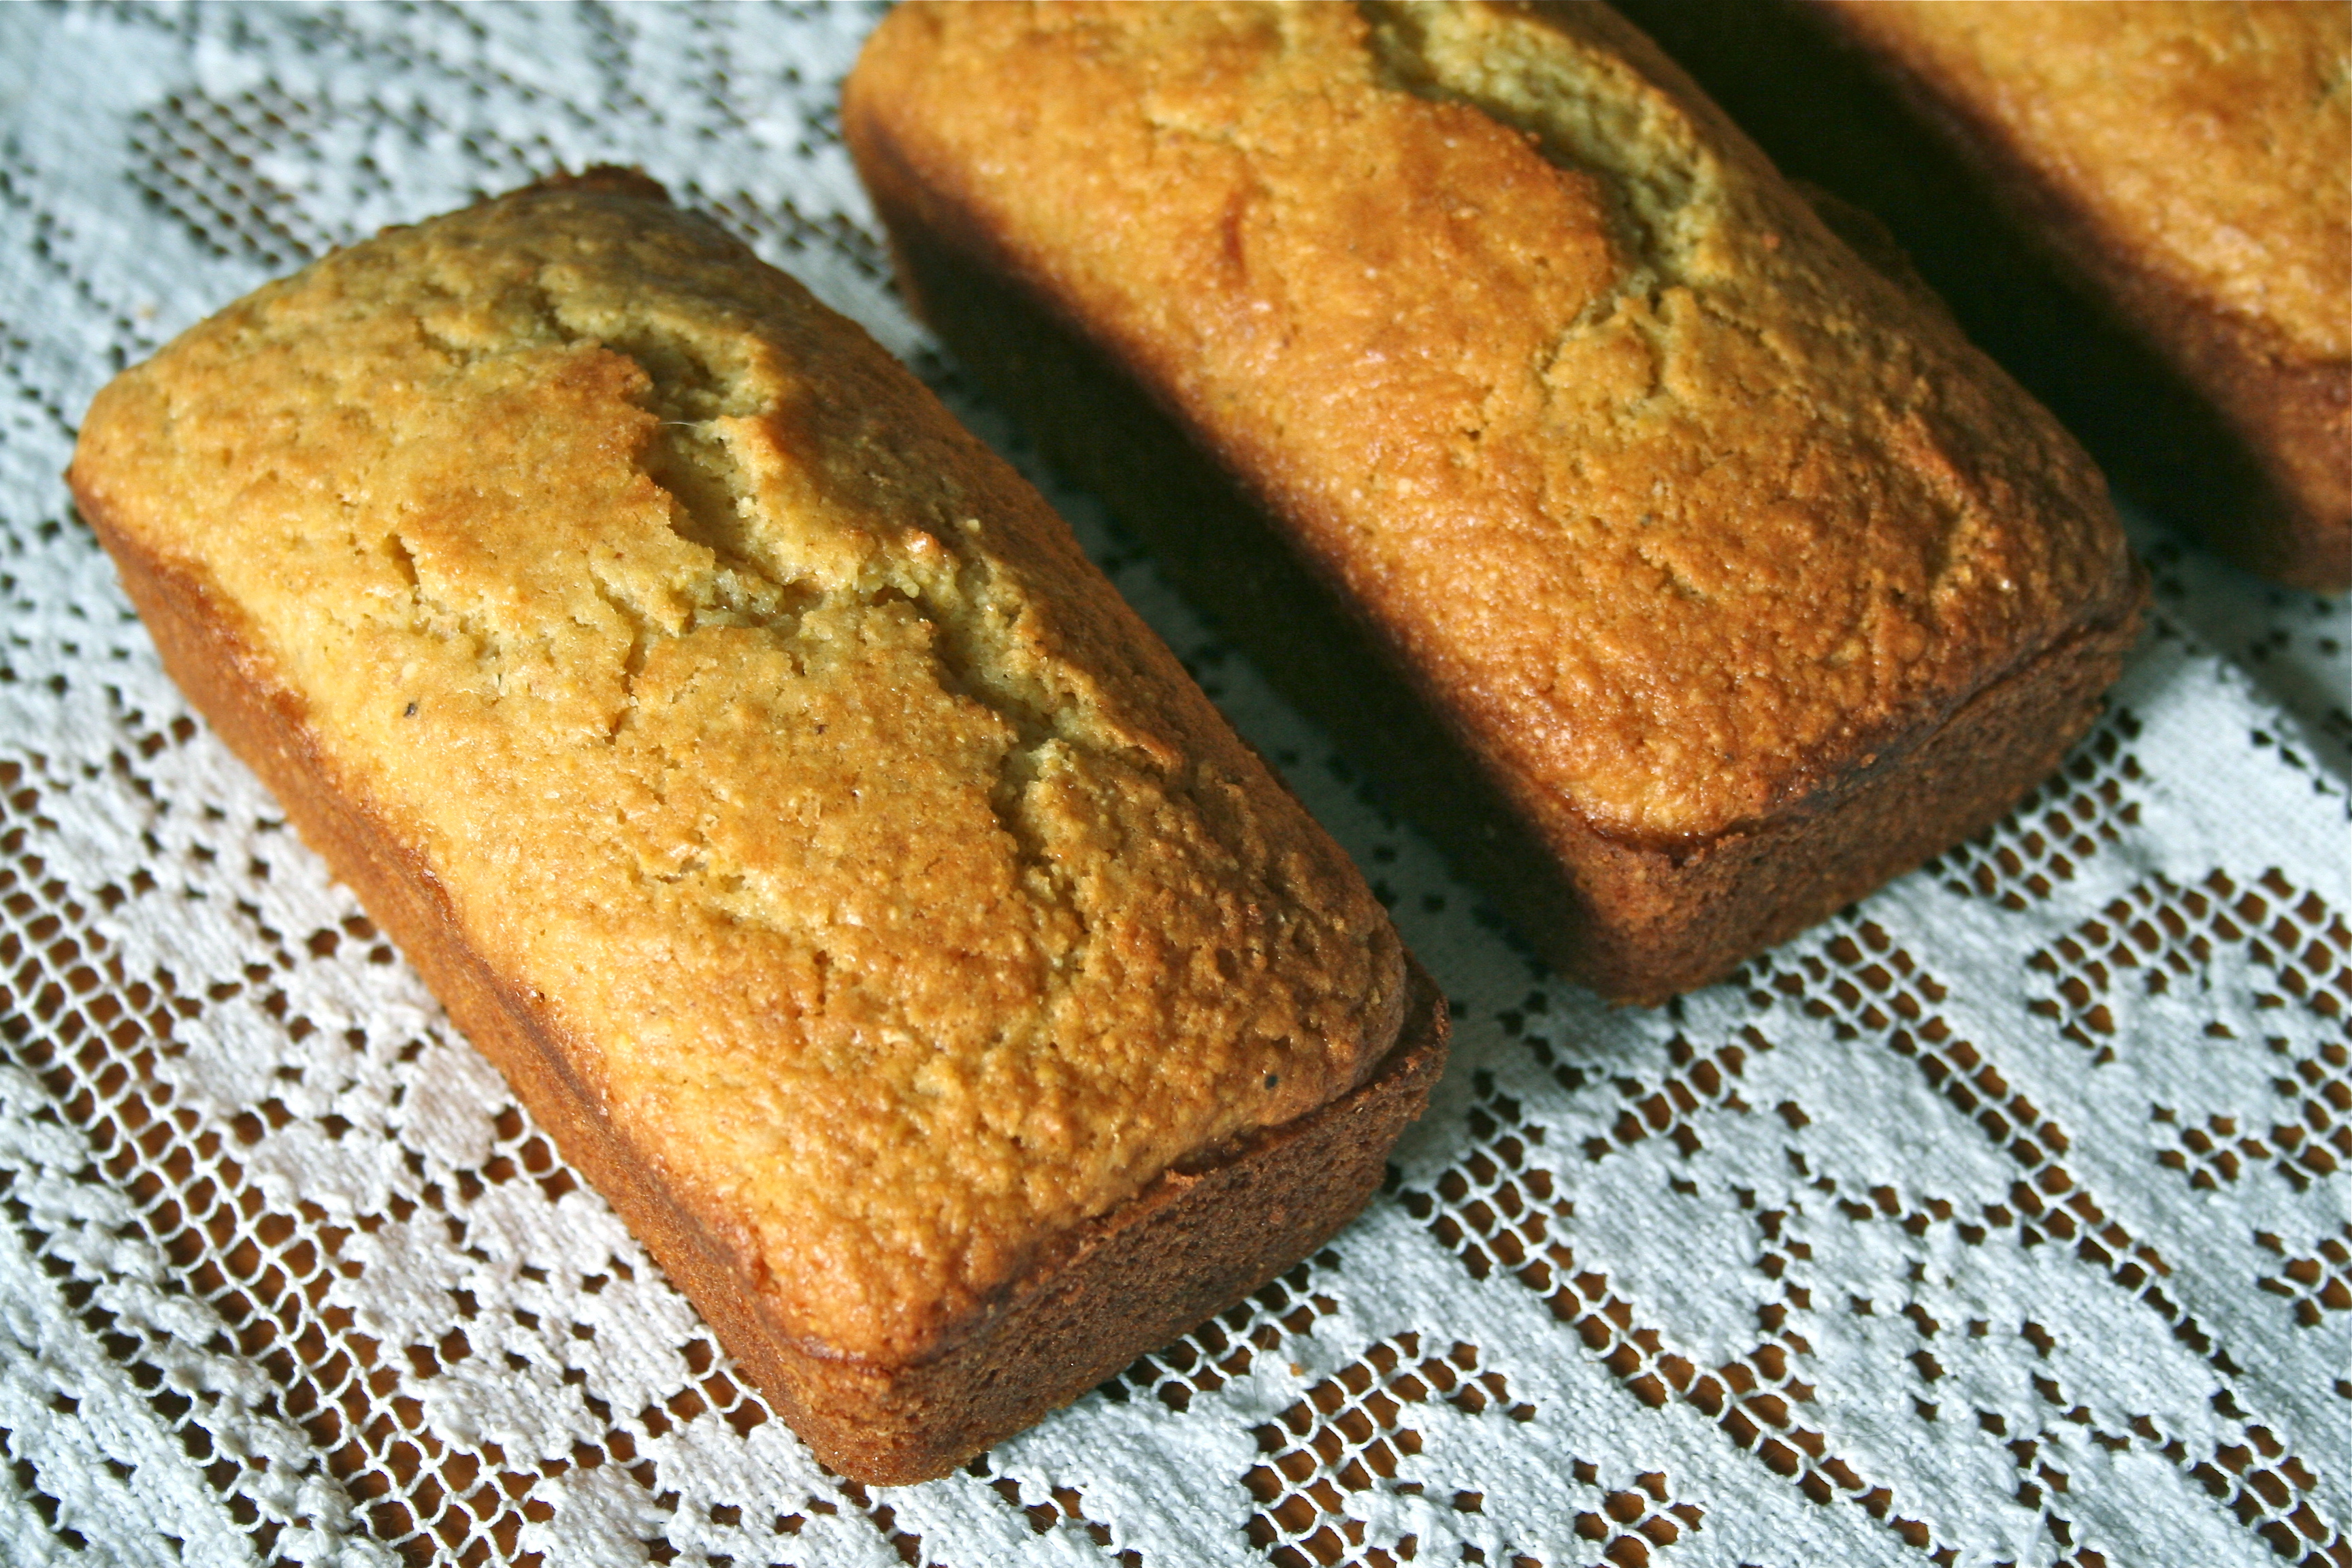 ... 2013 at 3456 × 2304 in Brown Butter Cornbread . ← Previous Next